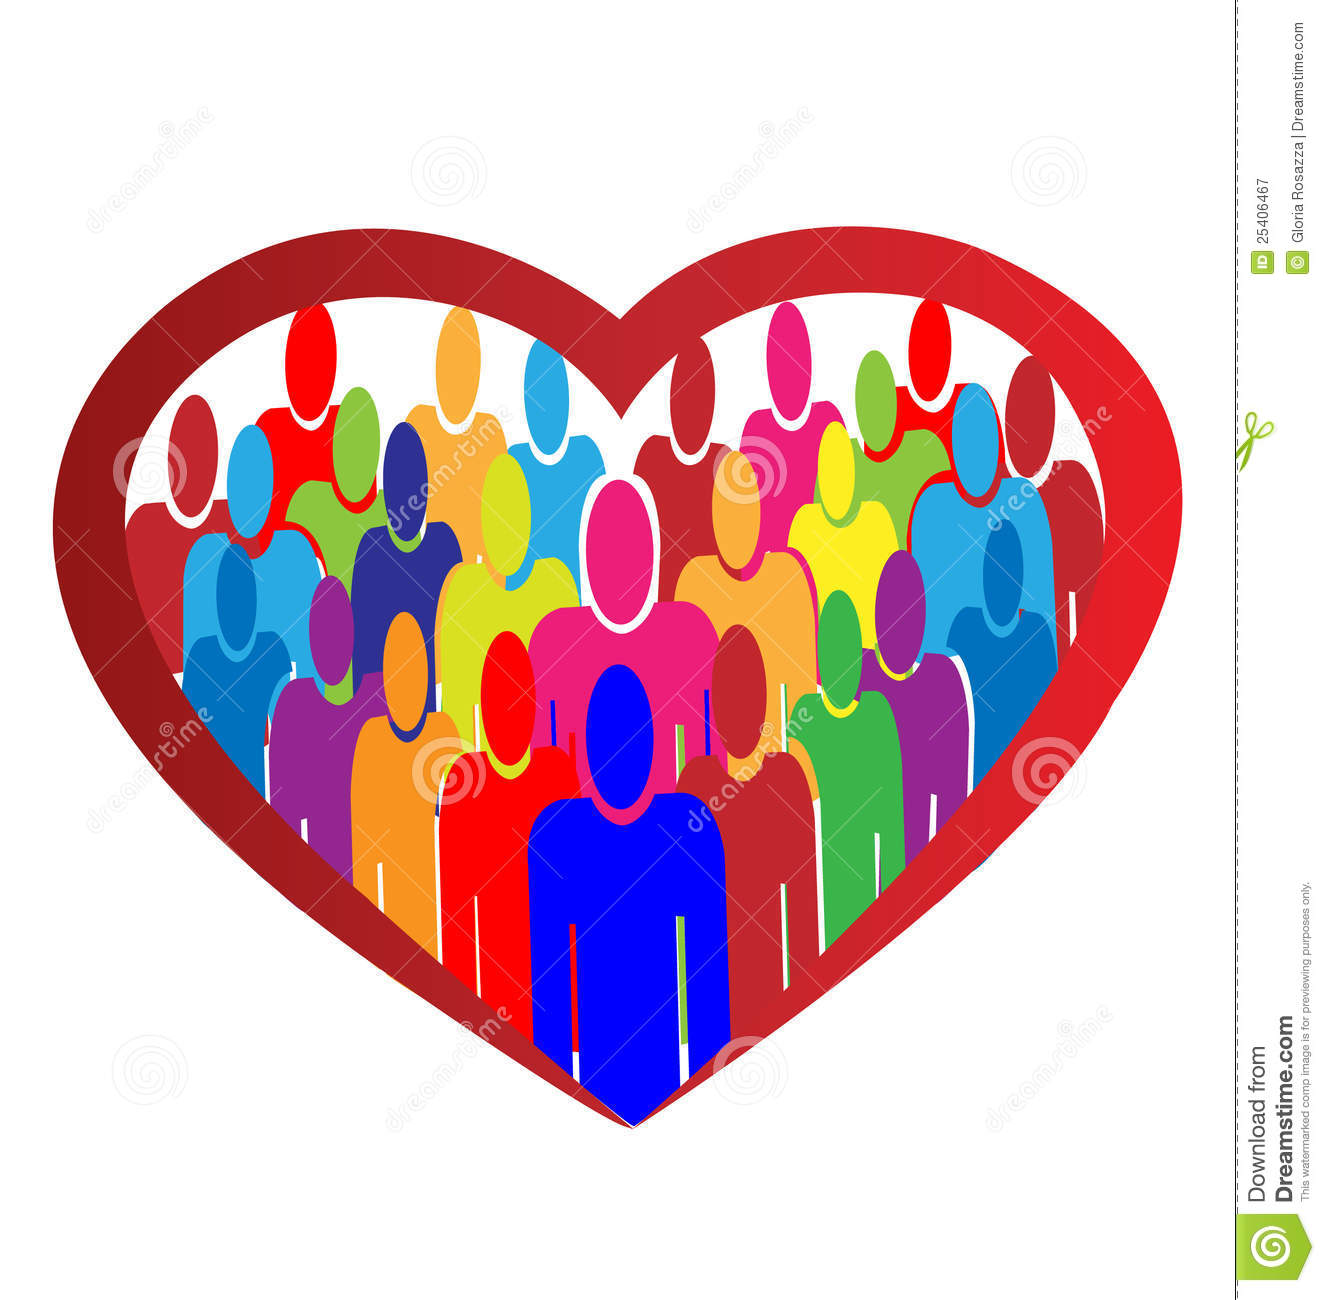 Diversity People Heart Logo Royalty Free Stock Photography - Image ...